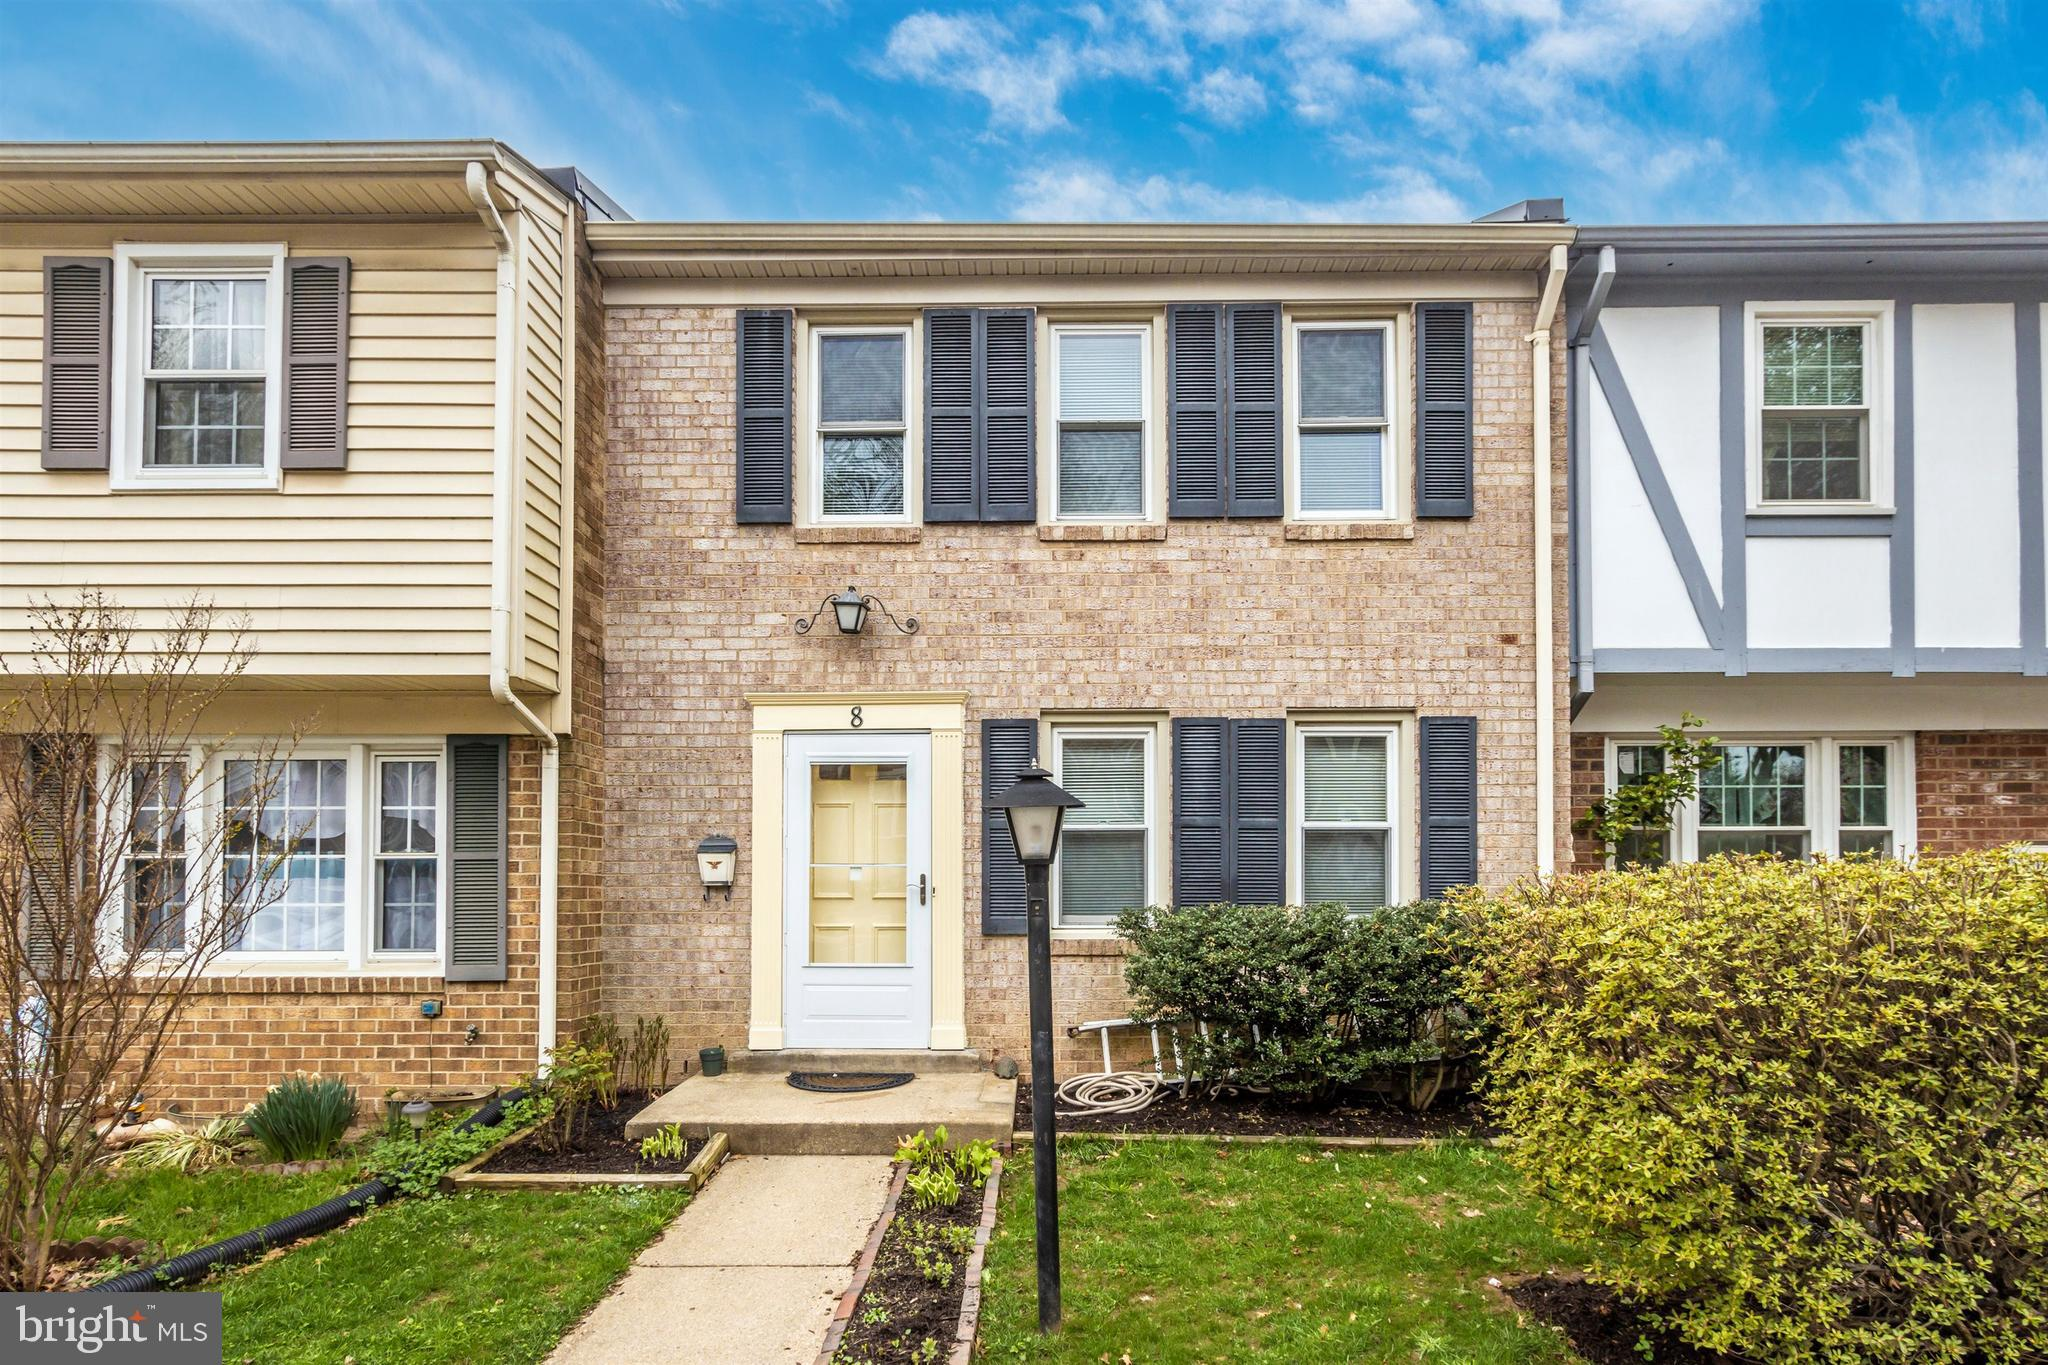 8 SUPREME COURT, GAITHERSBURG, Maryland 20878, 3 Bedrooms Bedrooms, ,3 BathroomsBathrooms,Condominium,For Sale,8 SUPREME COURT,MDMC752536